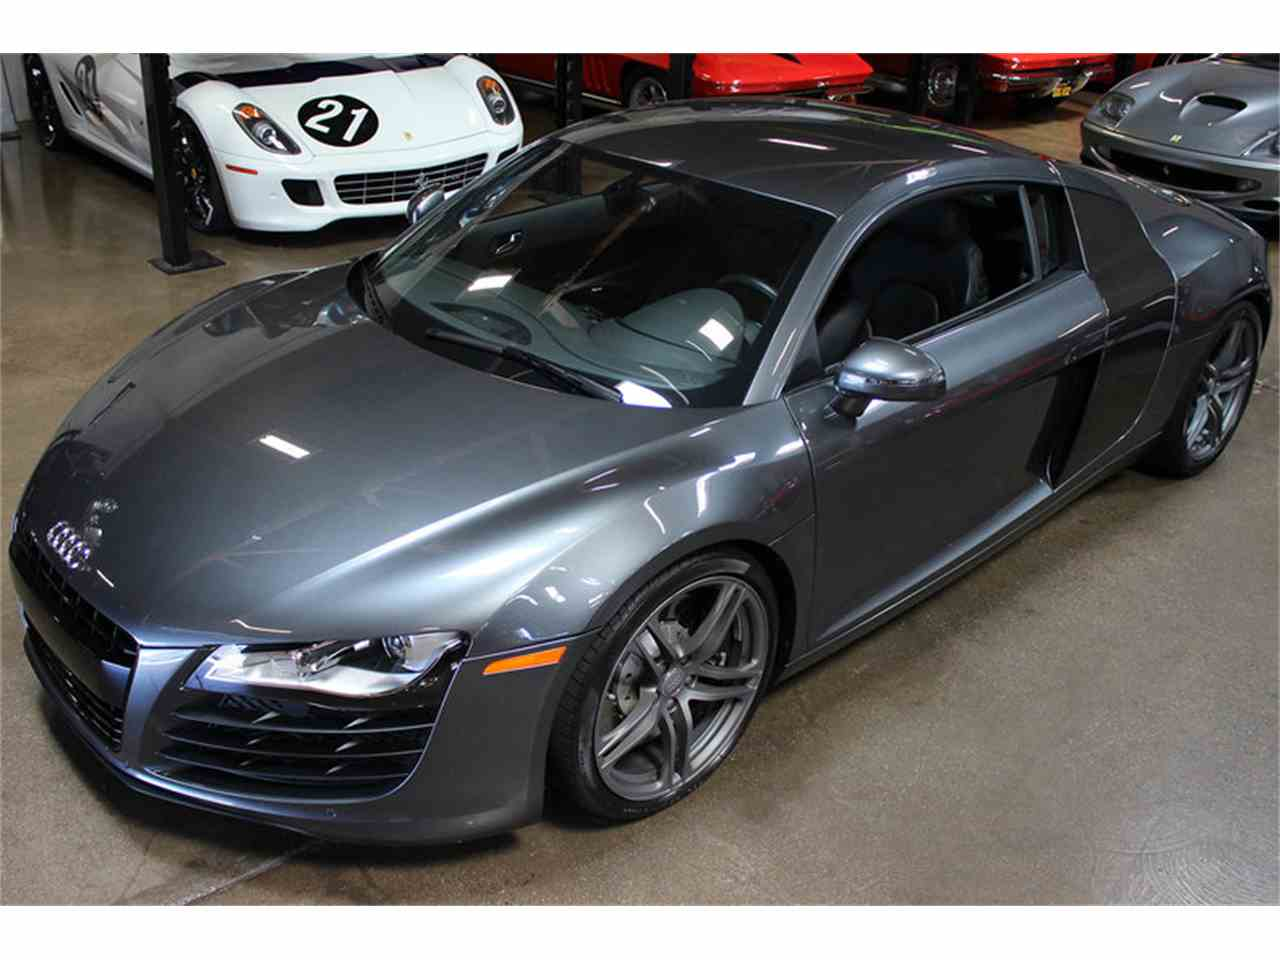 Large Picture of 2012 R8 located in California - LSDM